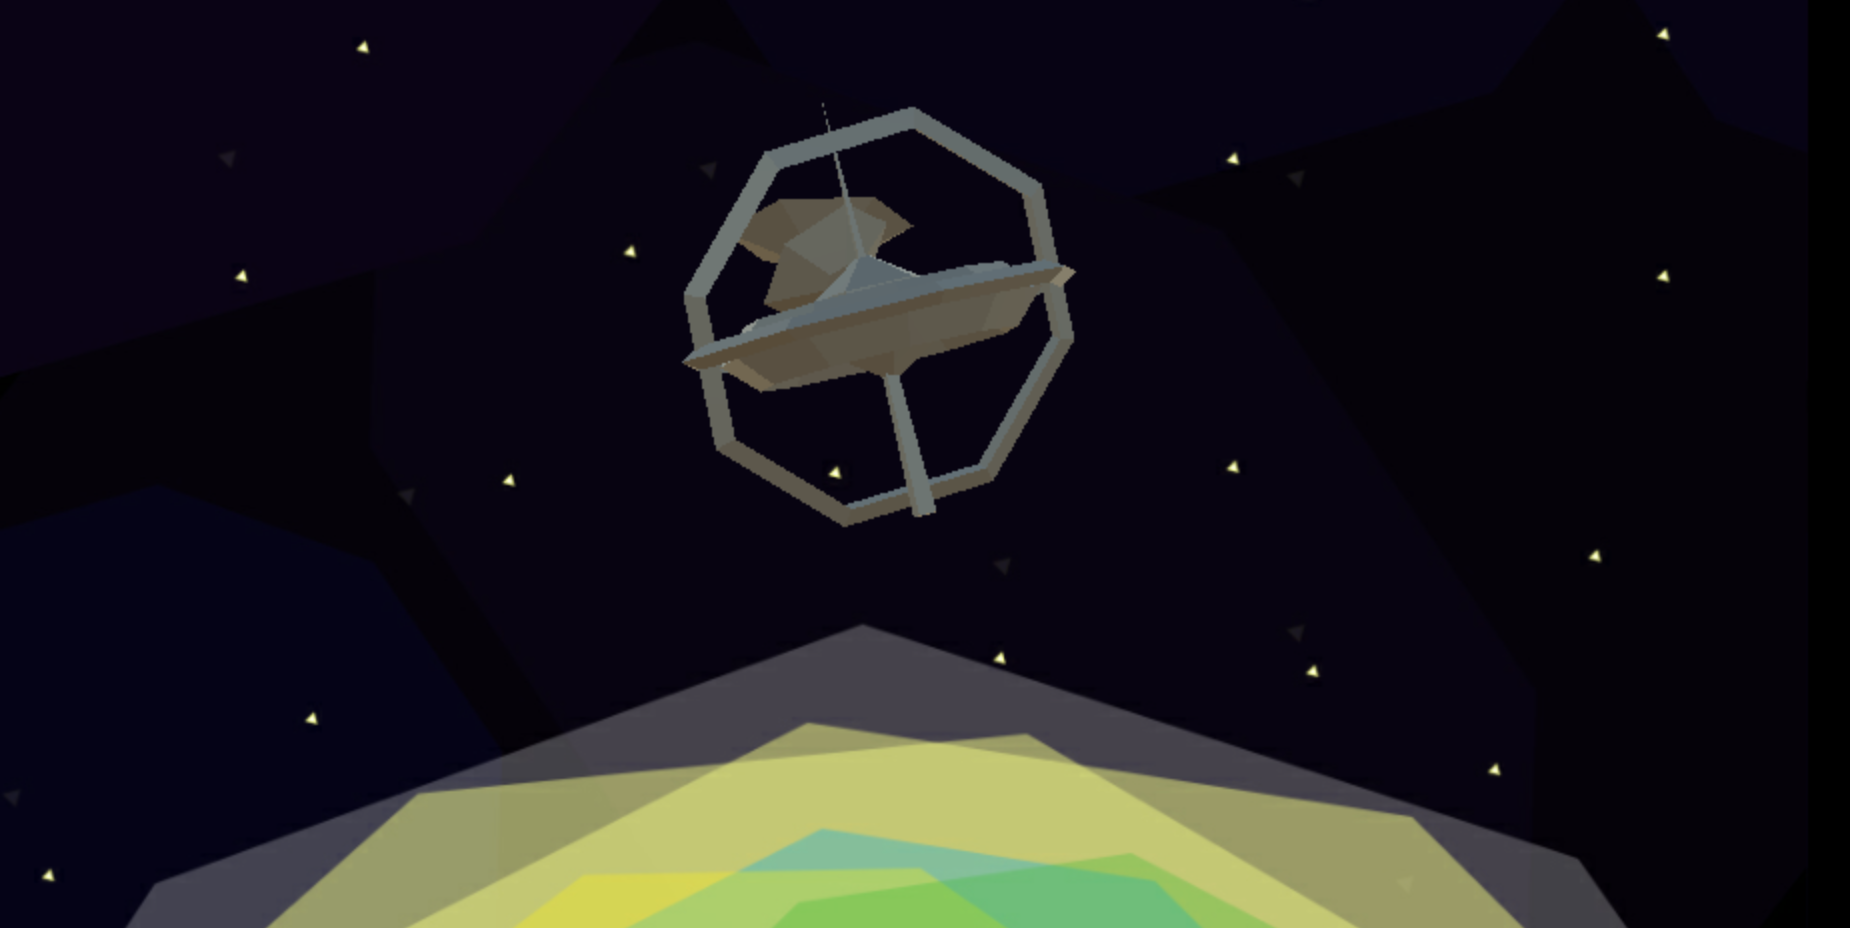 The background of the game Space Keeper showing some sort of floating space ship